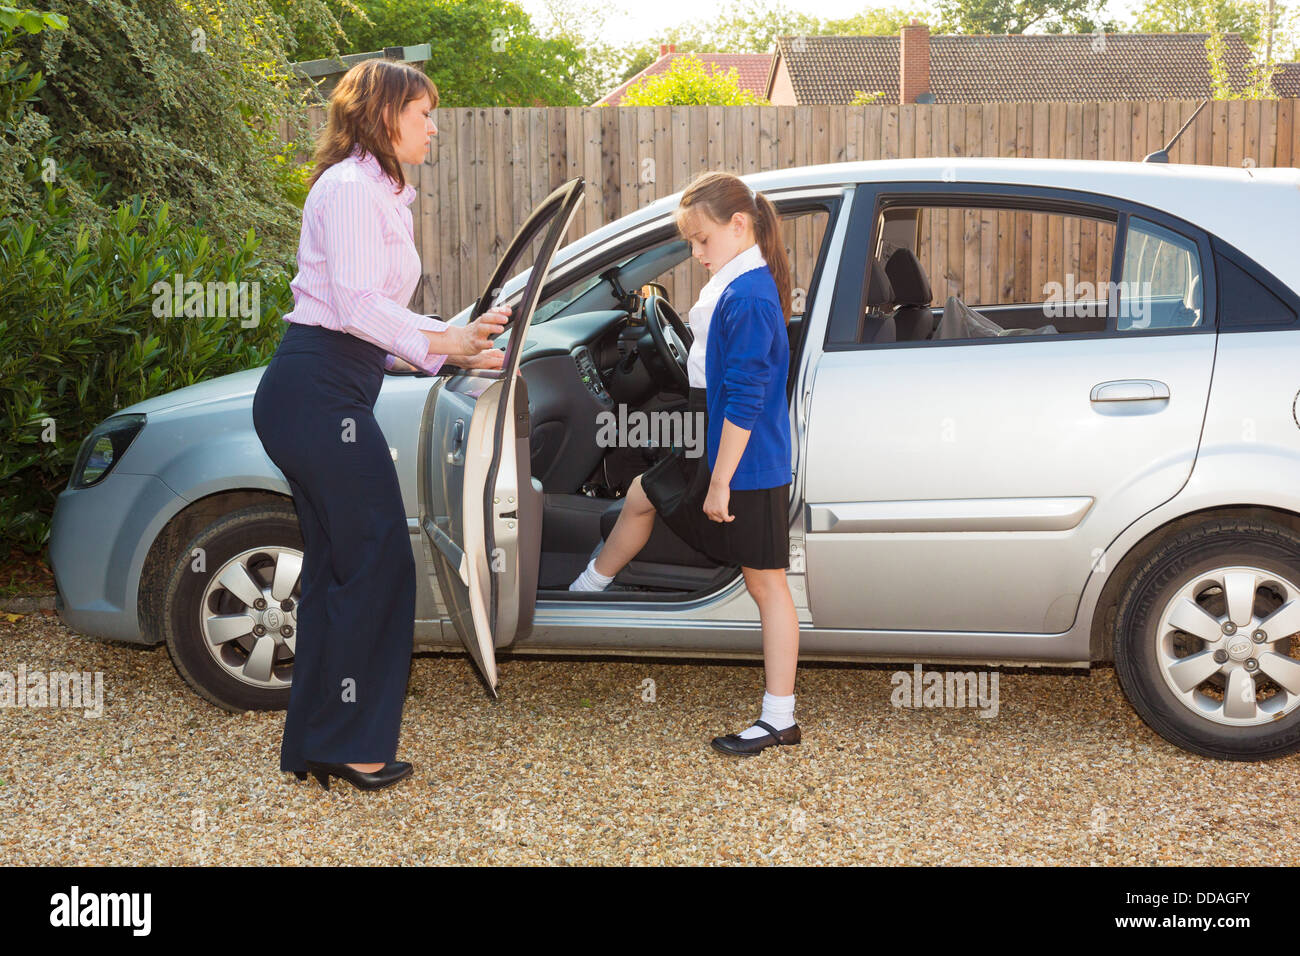 mother taking daughter to school in morning - Stock Image